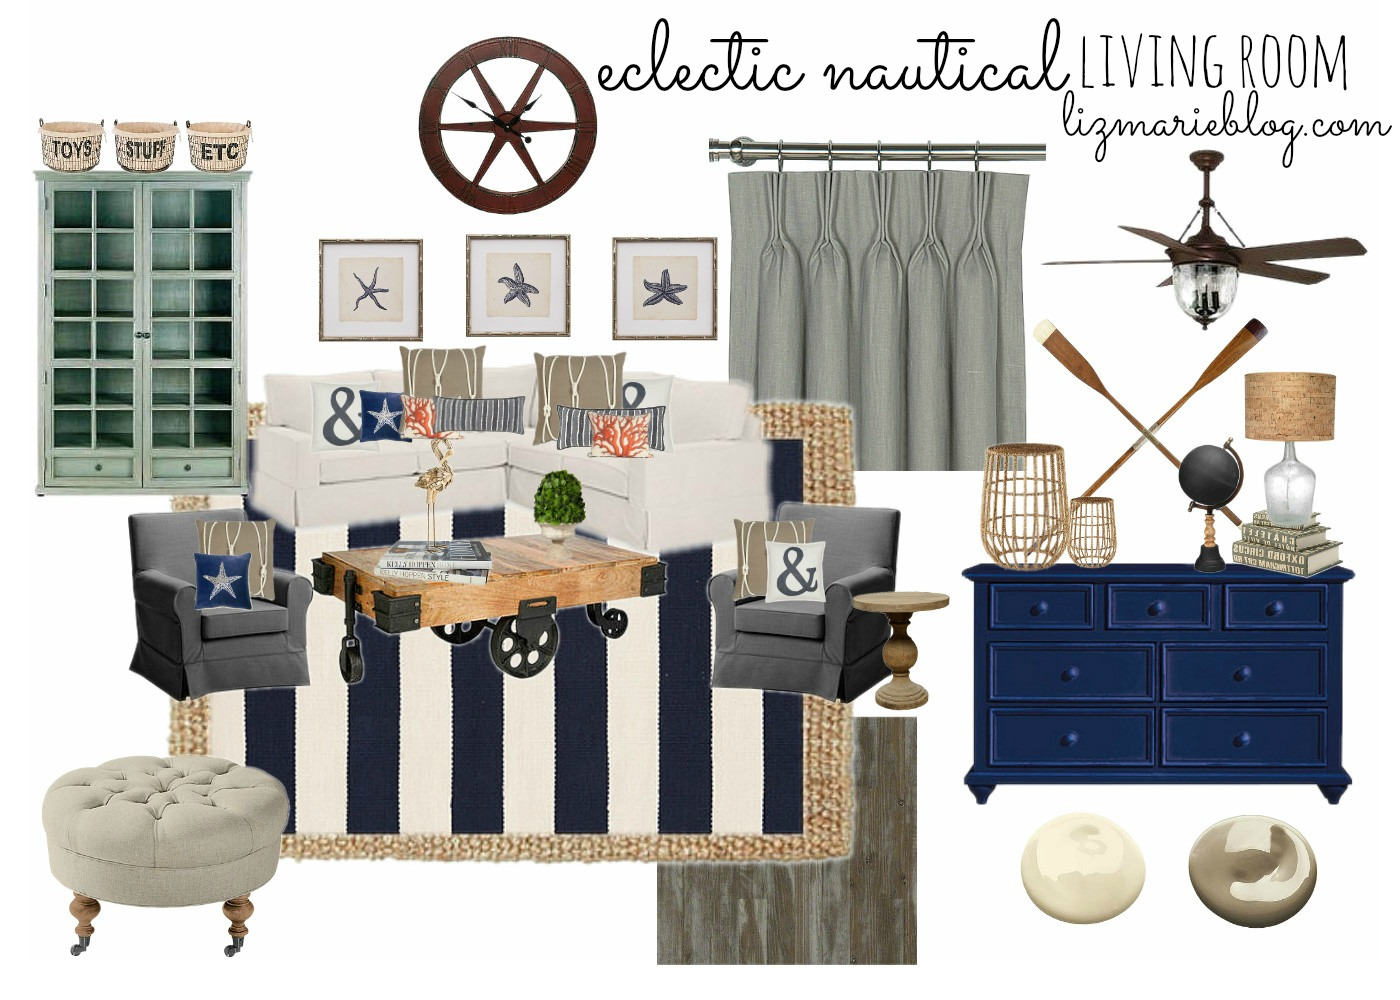 eclectic nautical living room liz marie blog. Black Bedroom Furniture Sets. Home Design Ideas